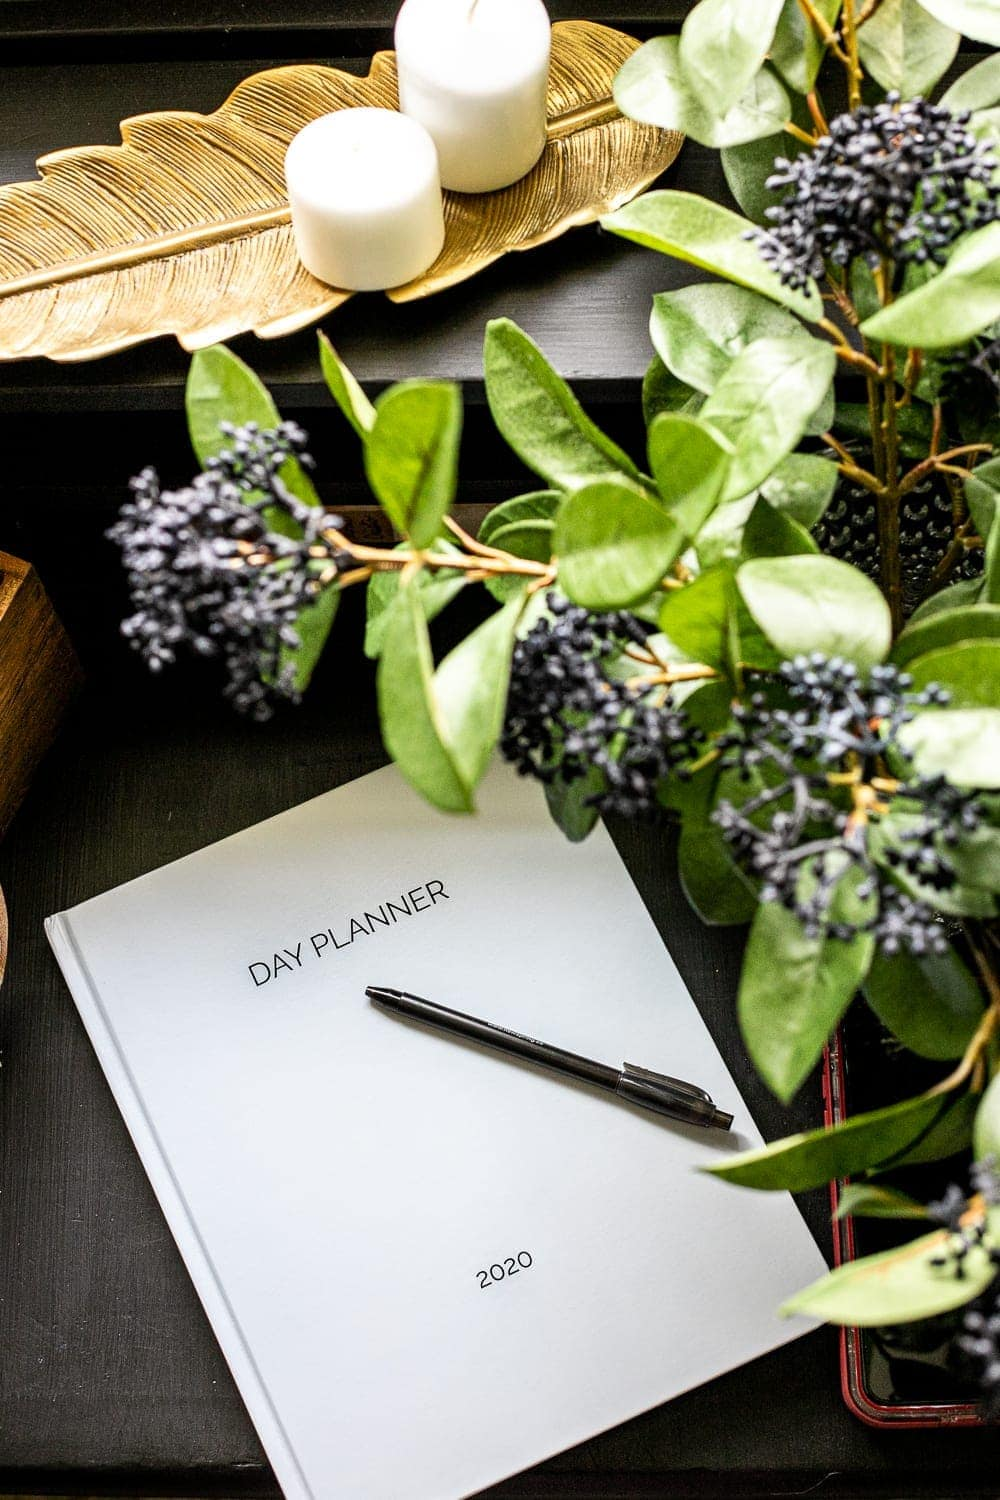 Favorite day planner and how to be more productive every day